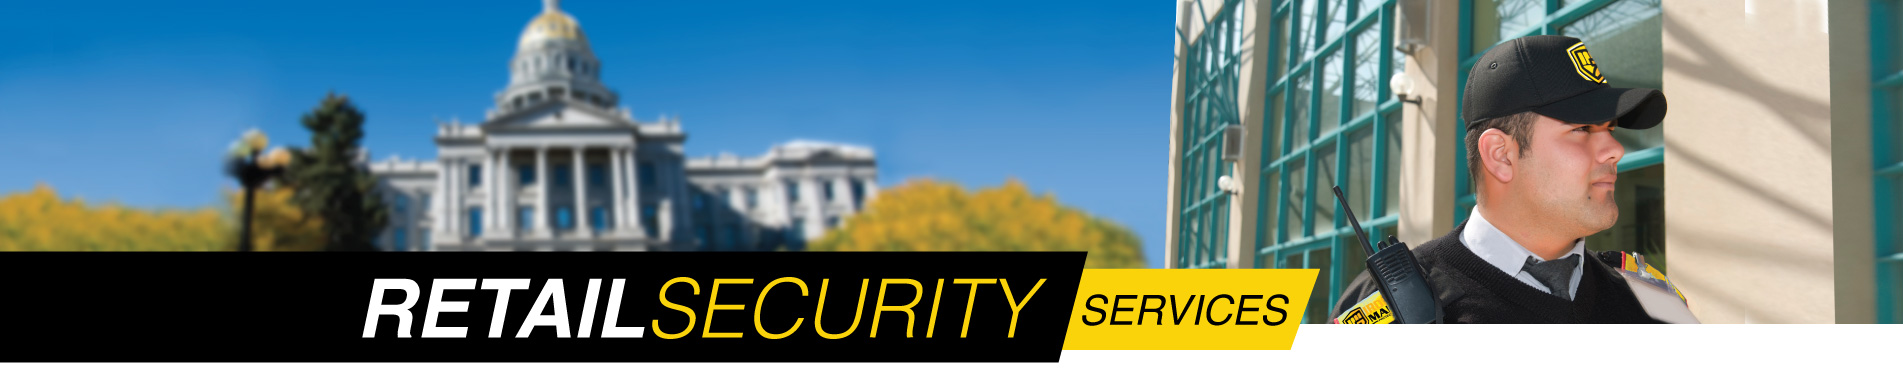 Houston area retail security services